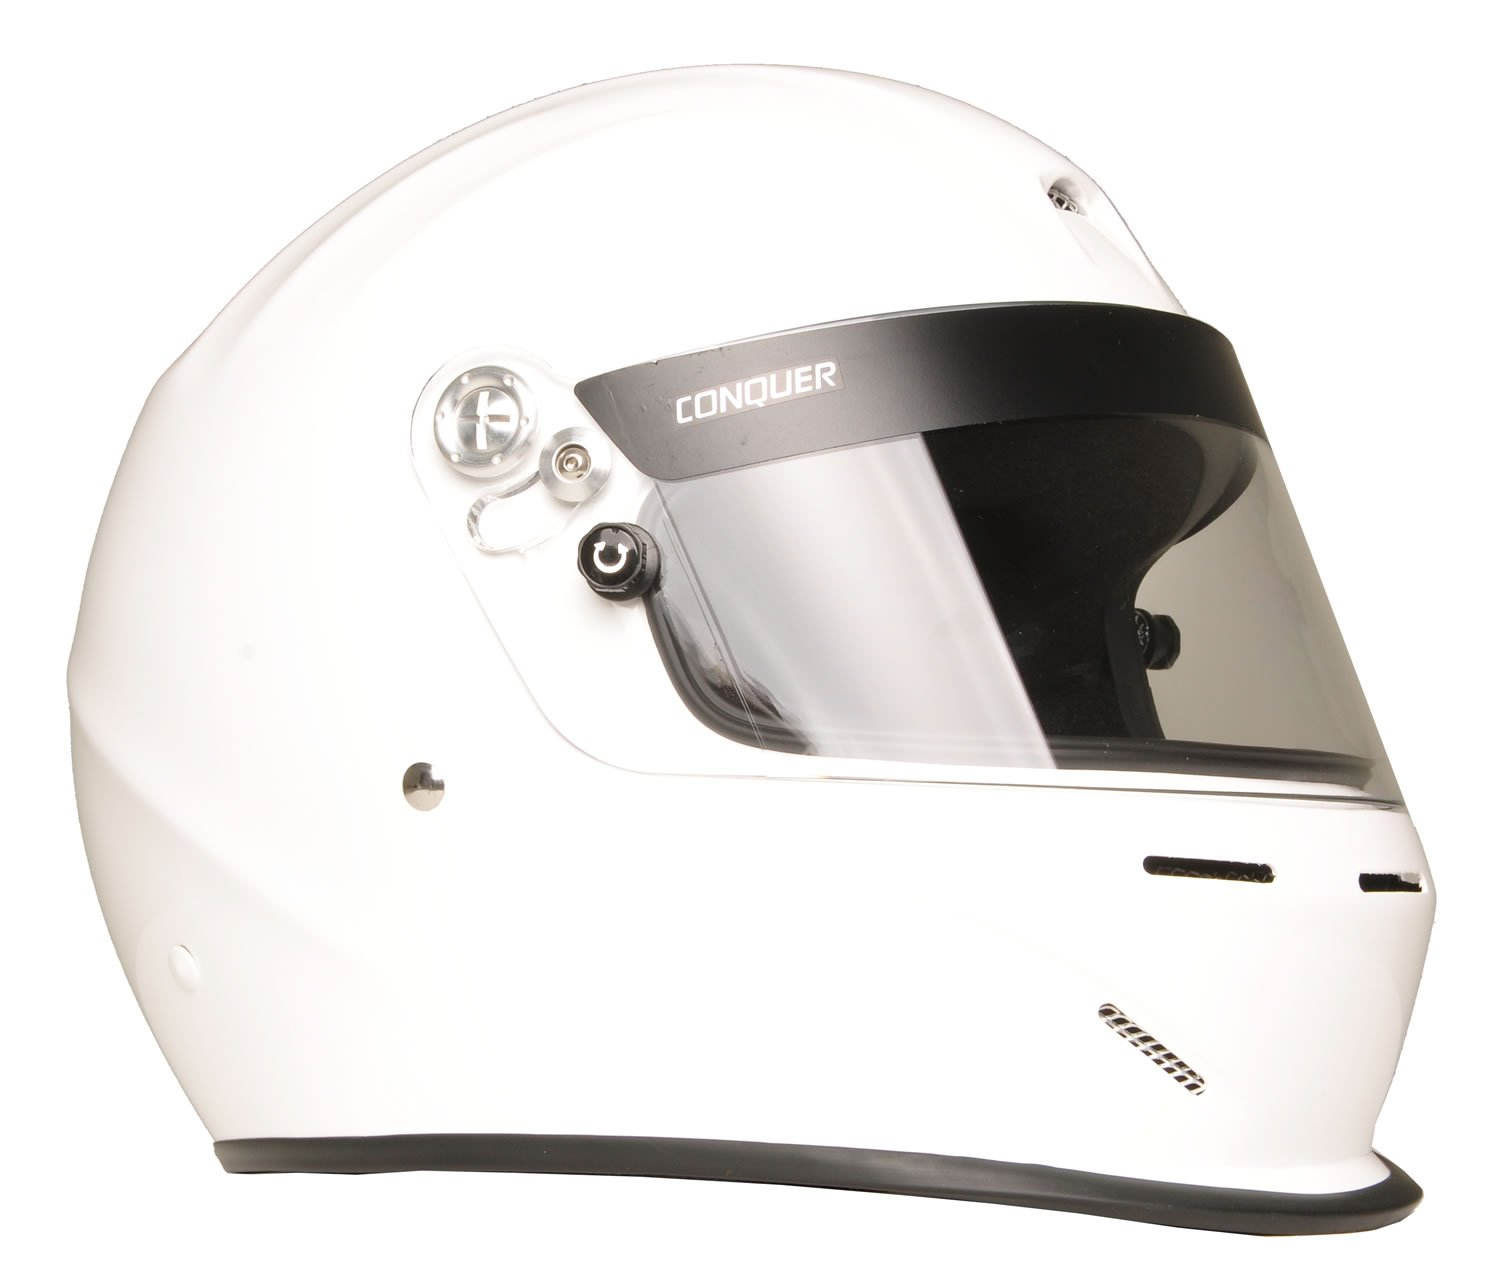 Snell SA2015 Aerodynamic Vented Full Face Auto Racing Helmet Vilano